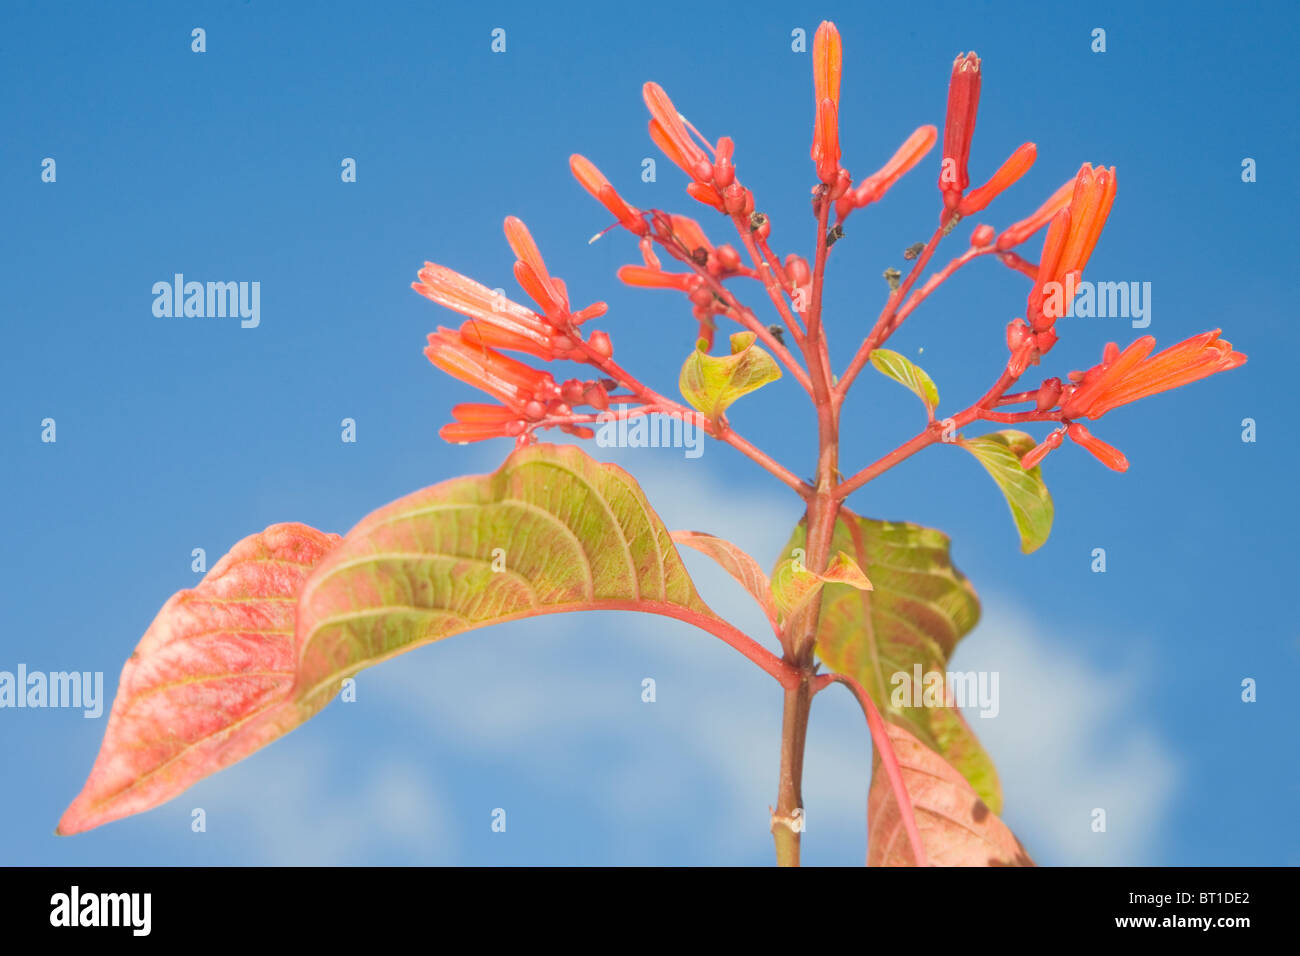 Hamelia patens in flower against a blue sky - Stock Image